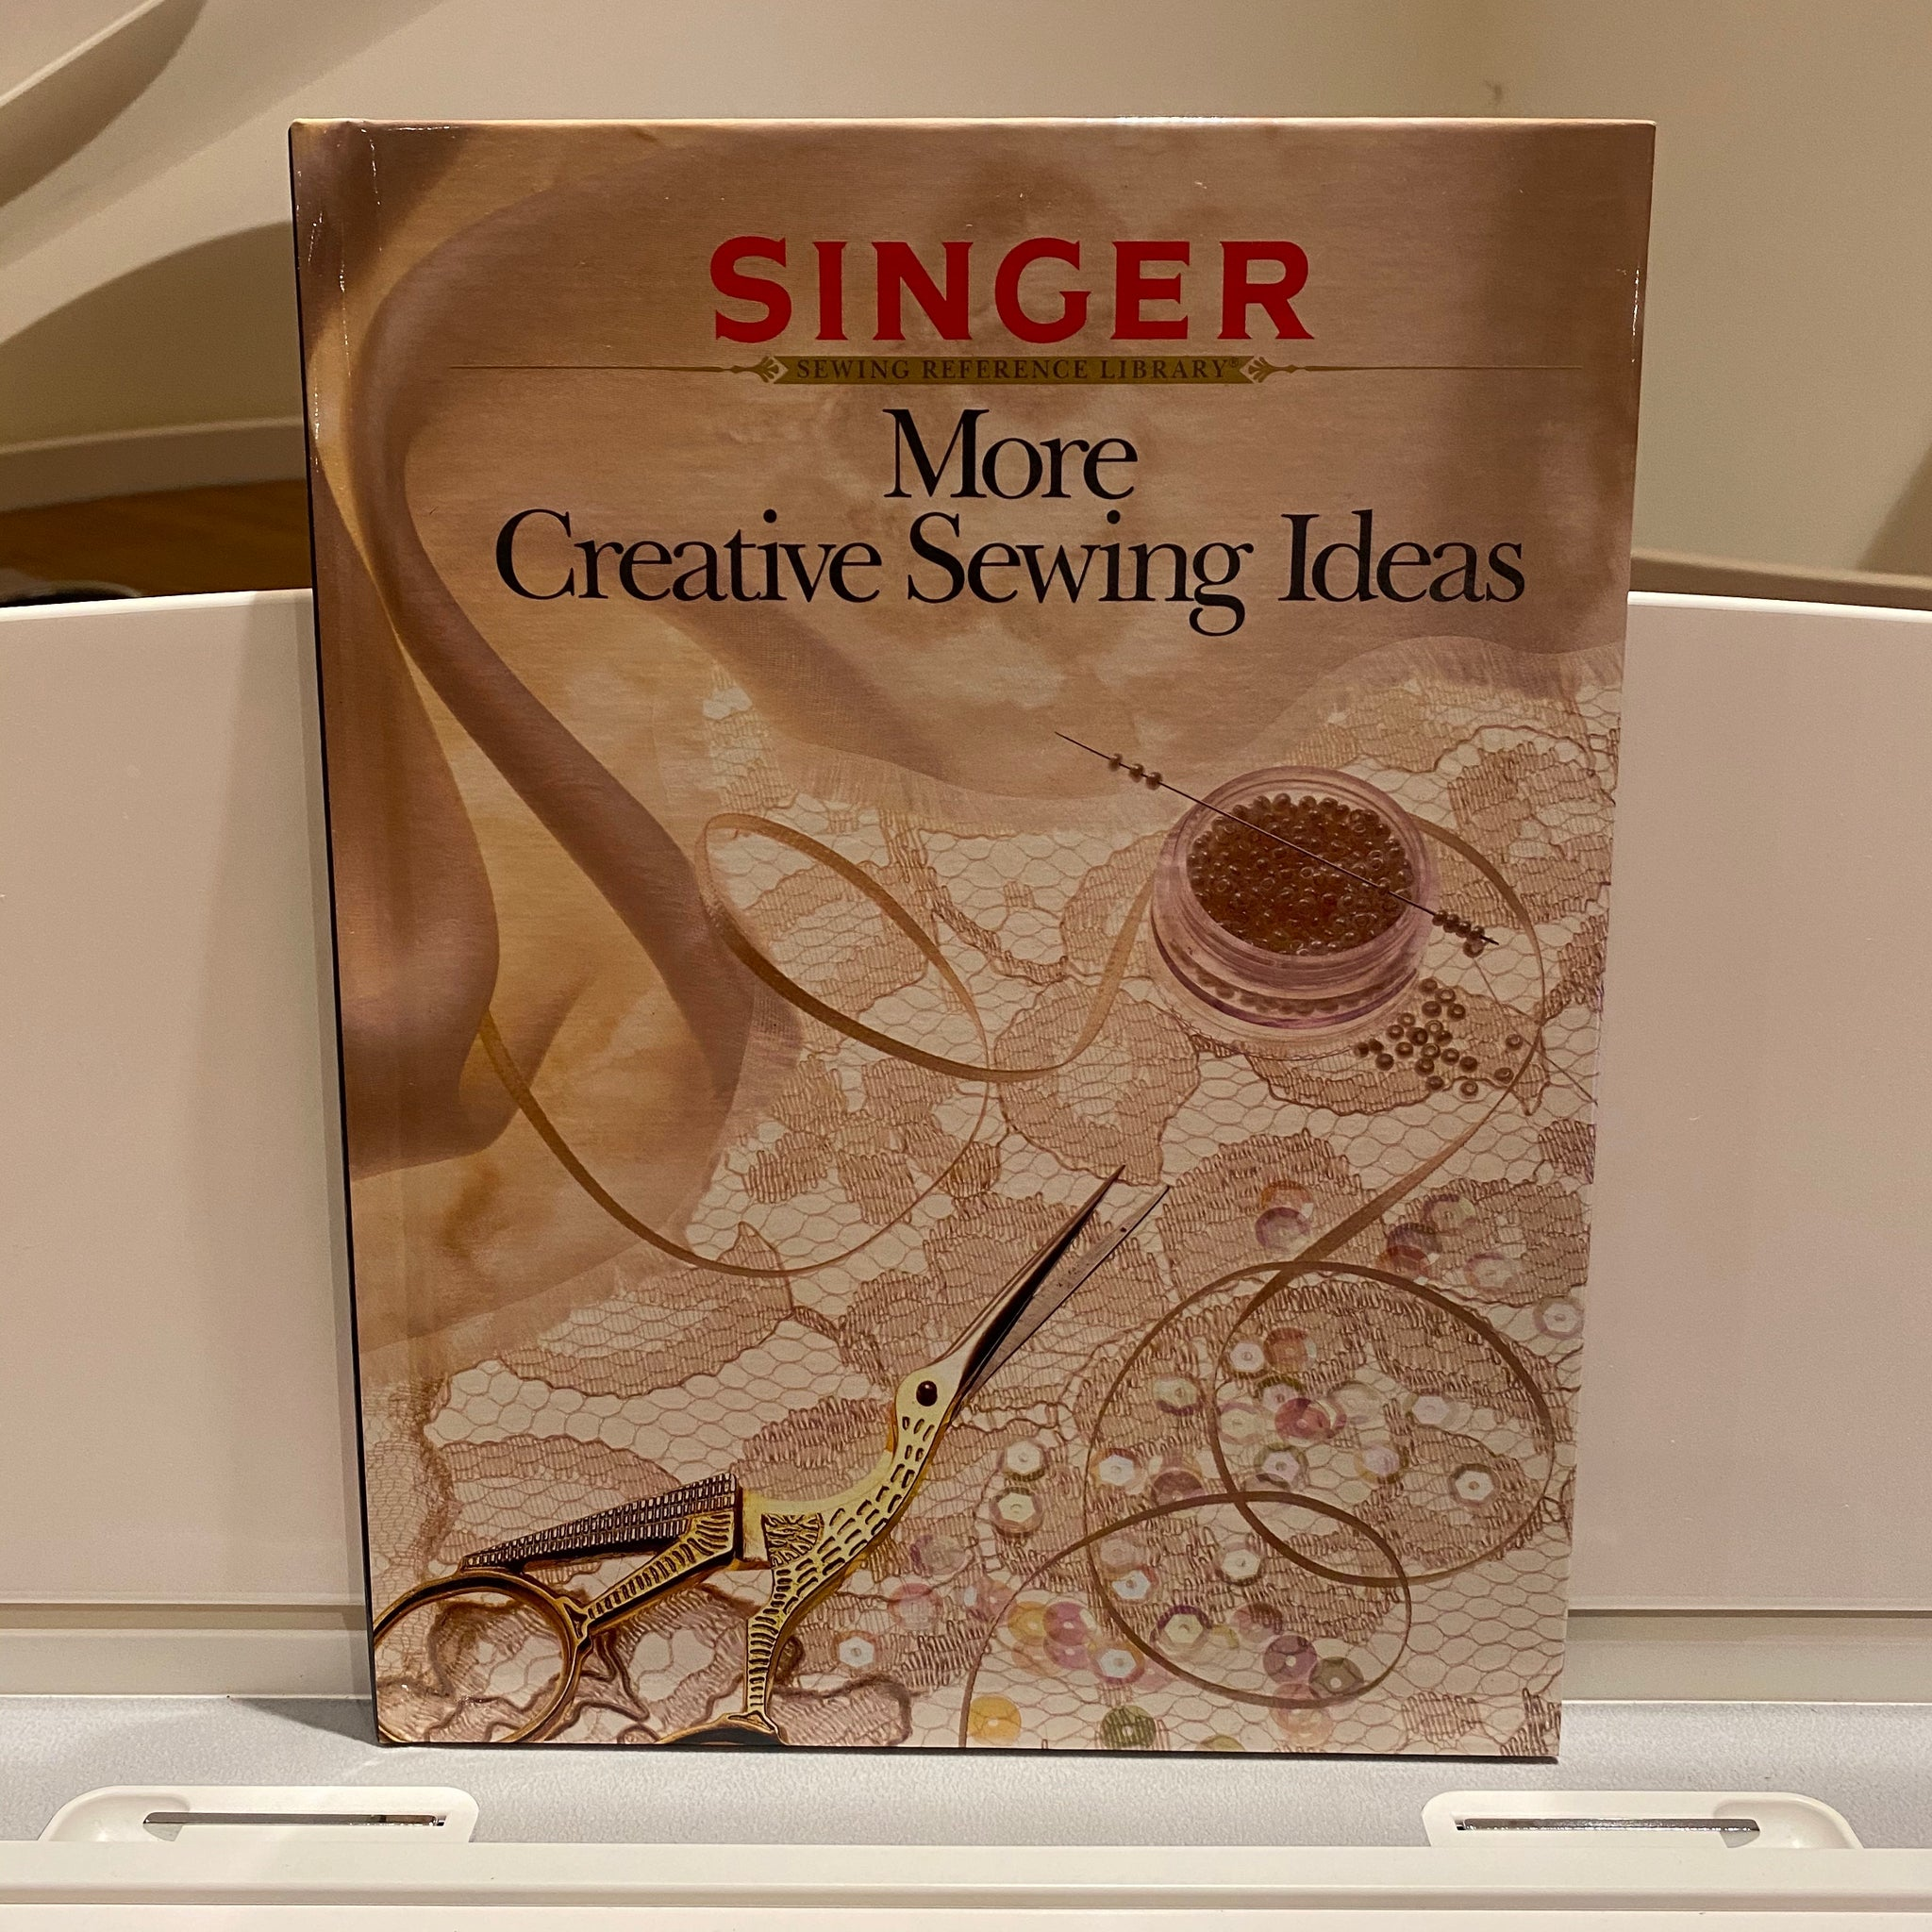 Singer Sewing Reference Library - More Creative Sewing Ideas (hardback book)